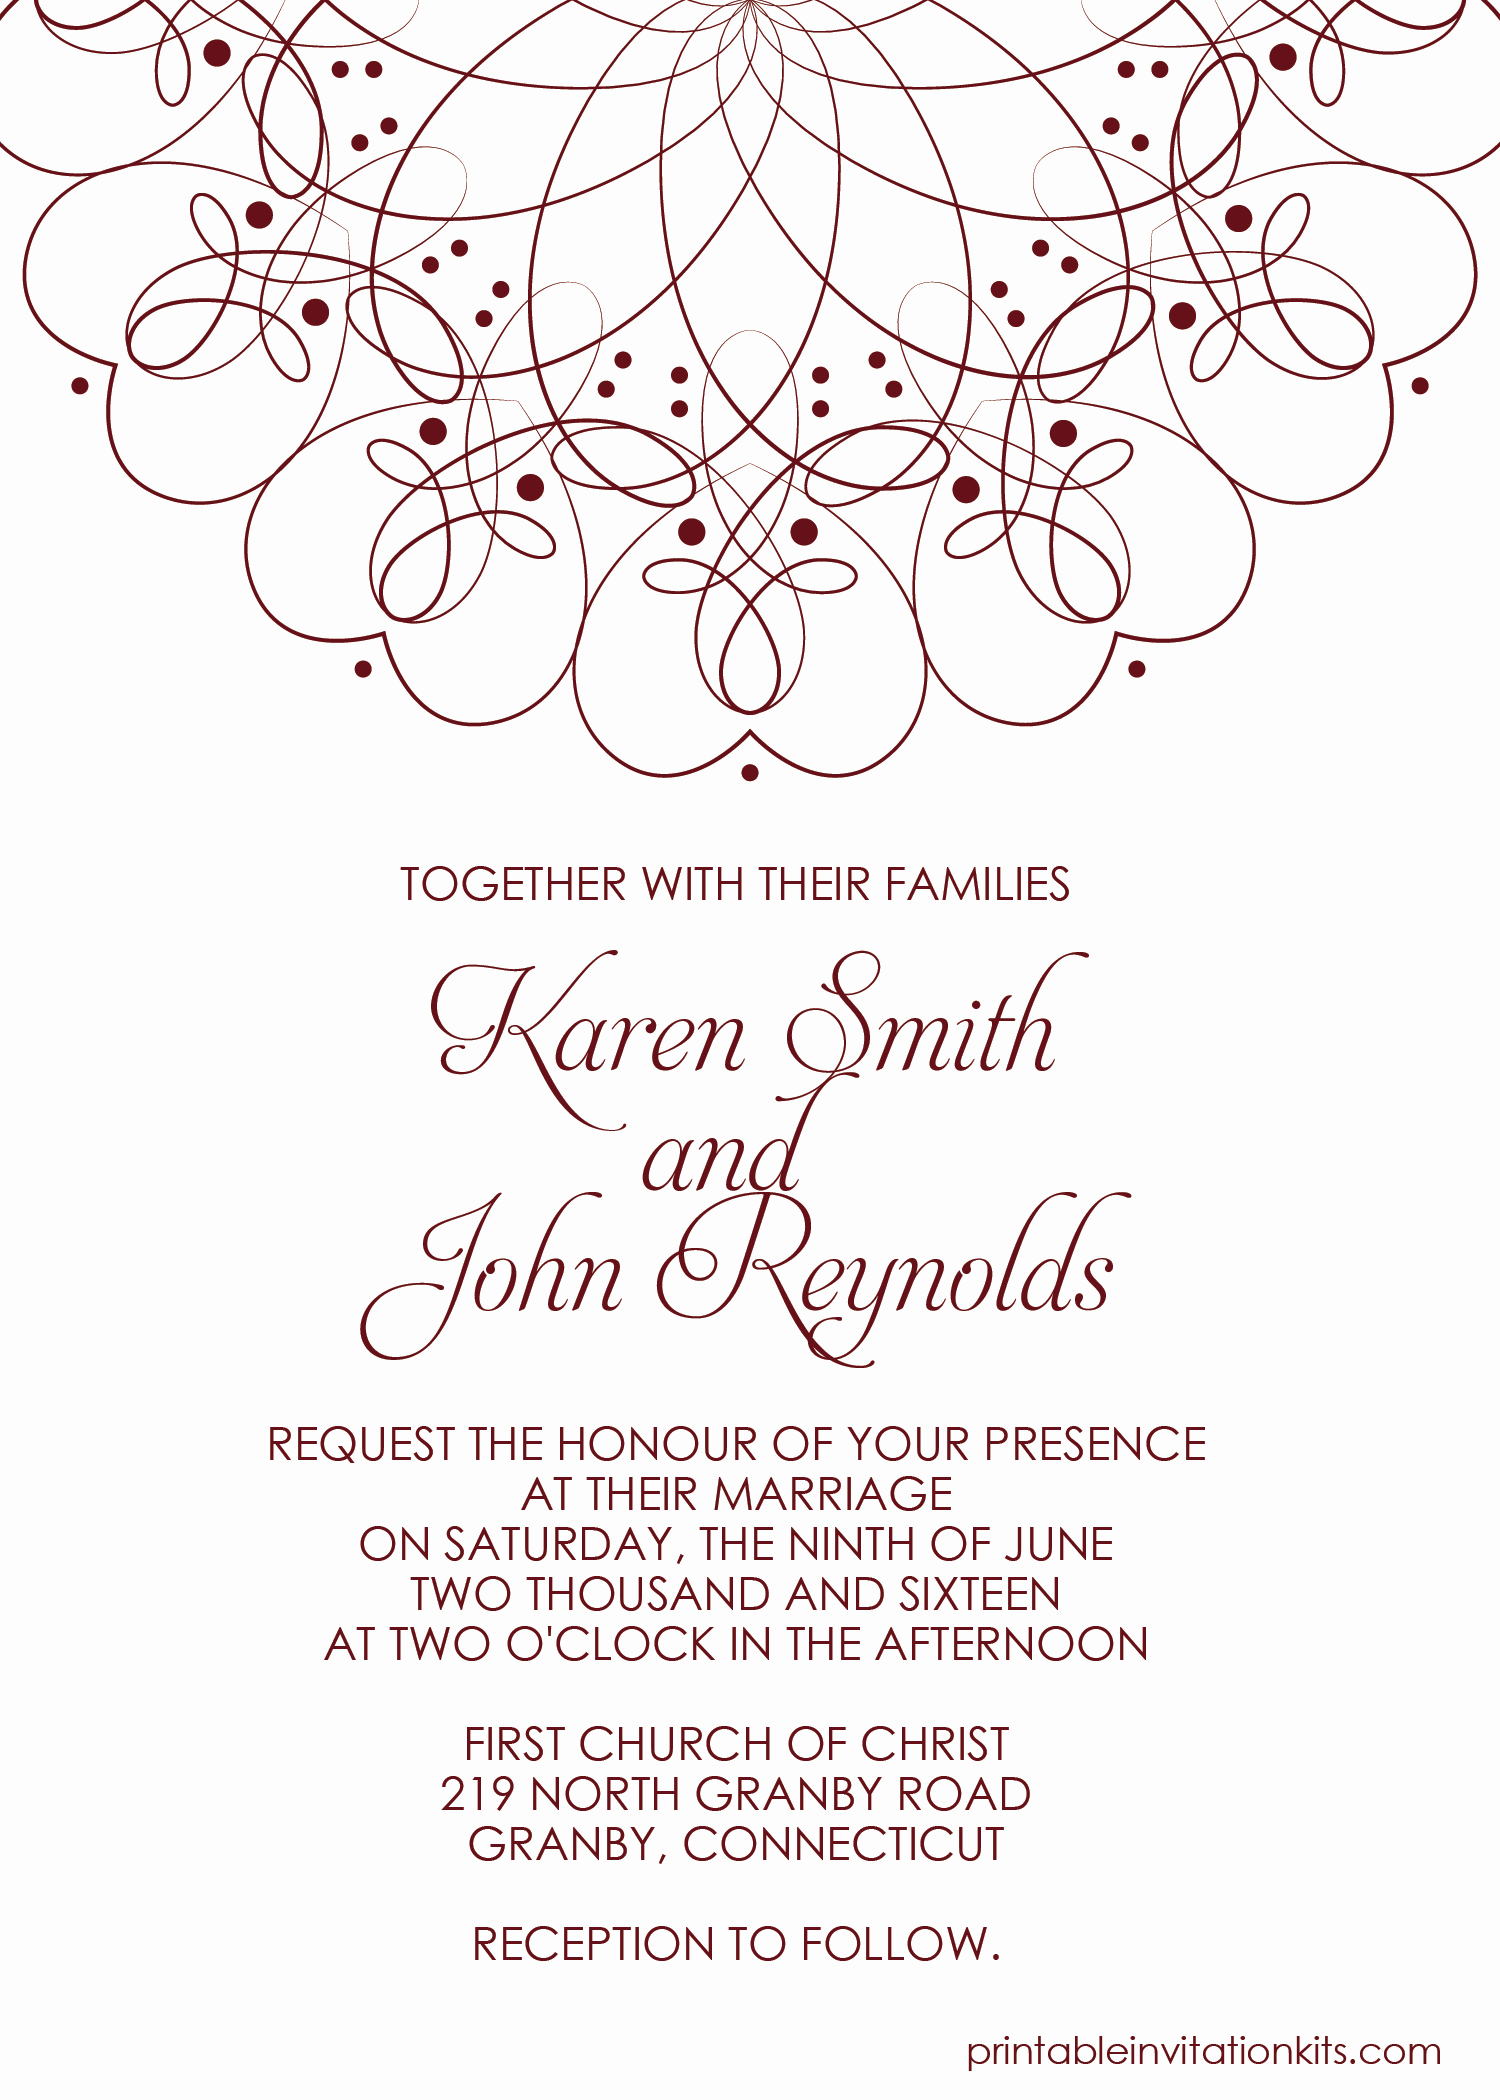 Printable Wedding Invitations Template Awesome Spiral Border Invitation Free Pdf Template for Weddings